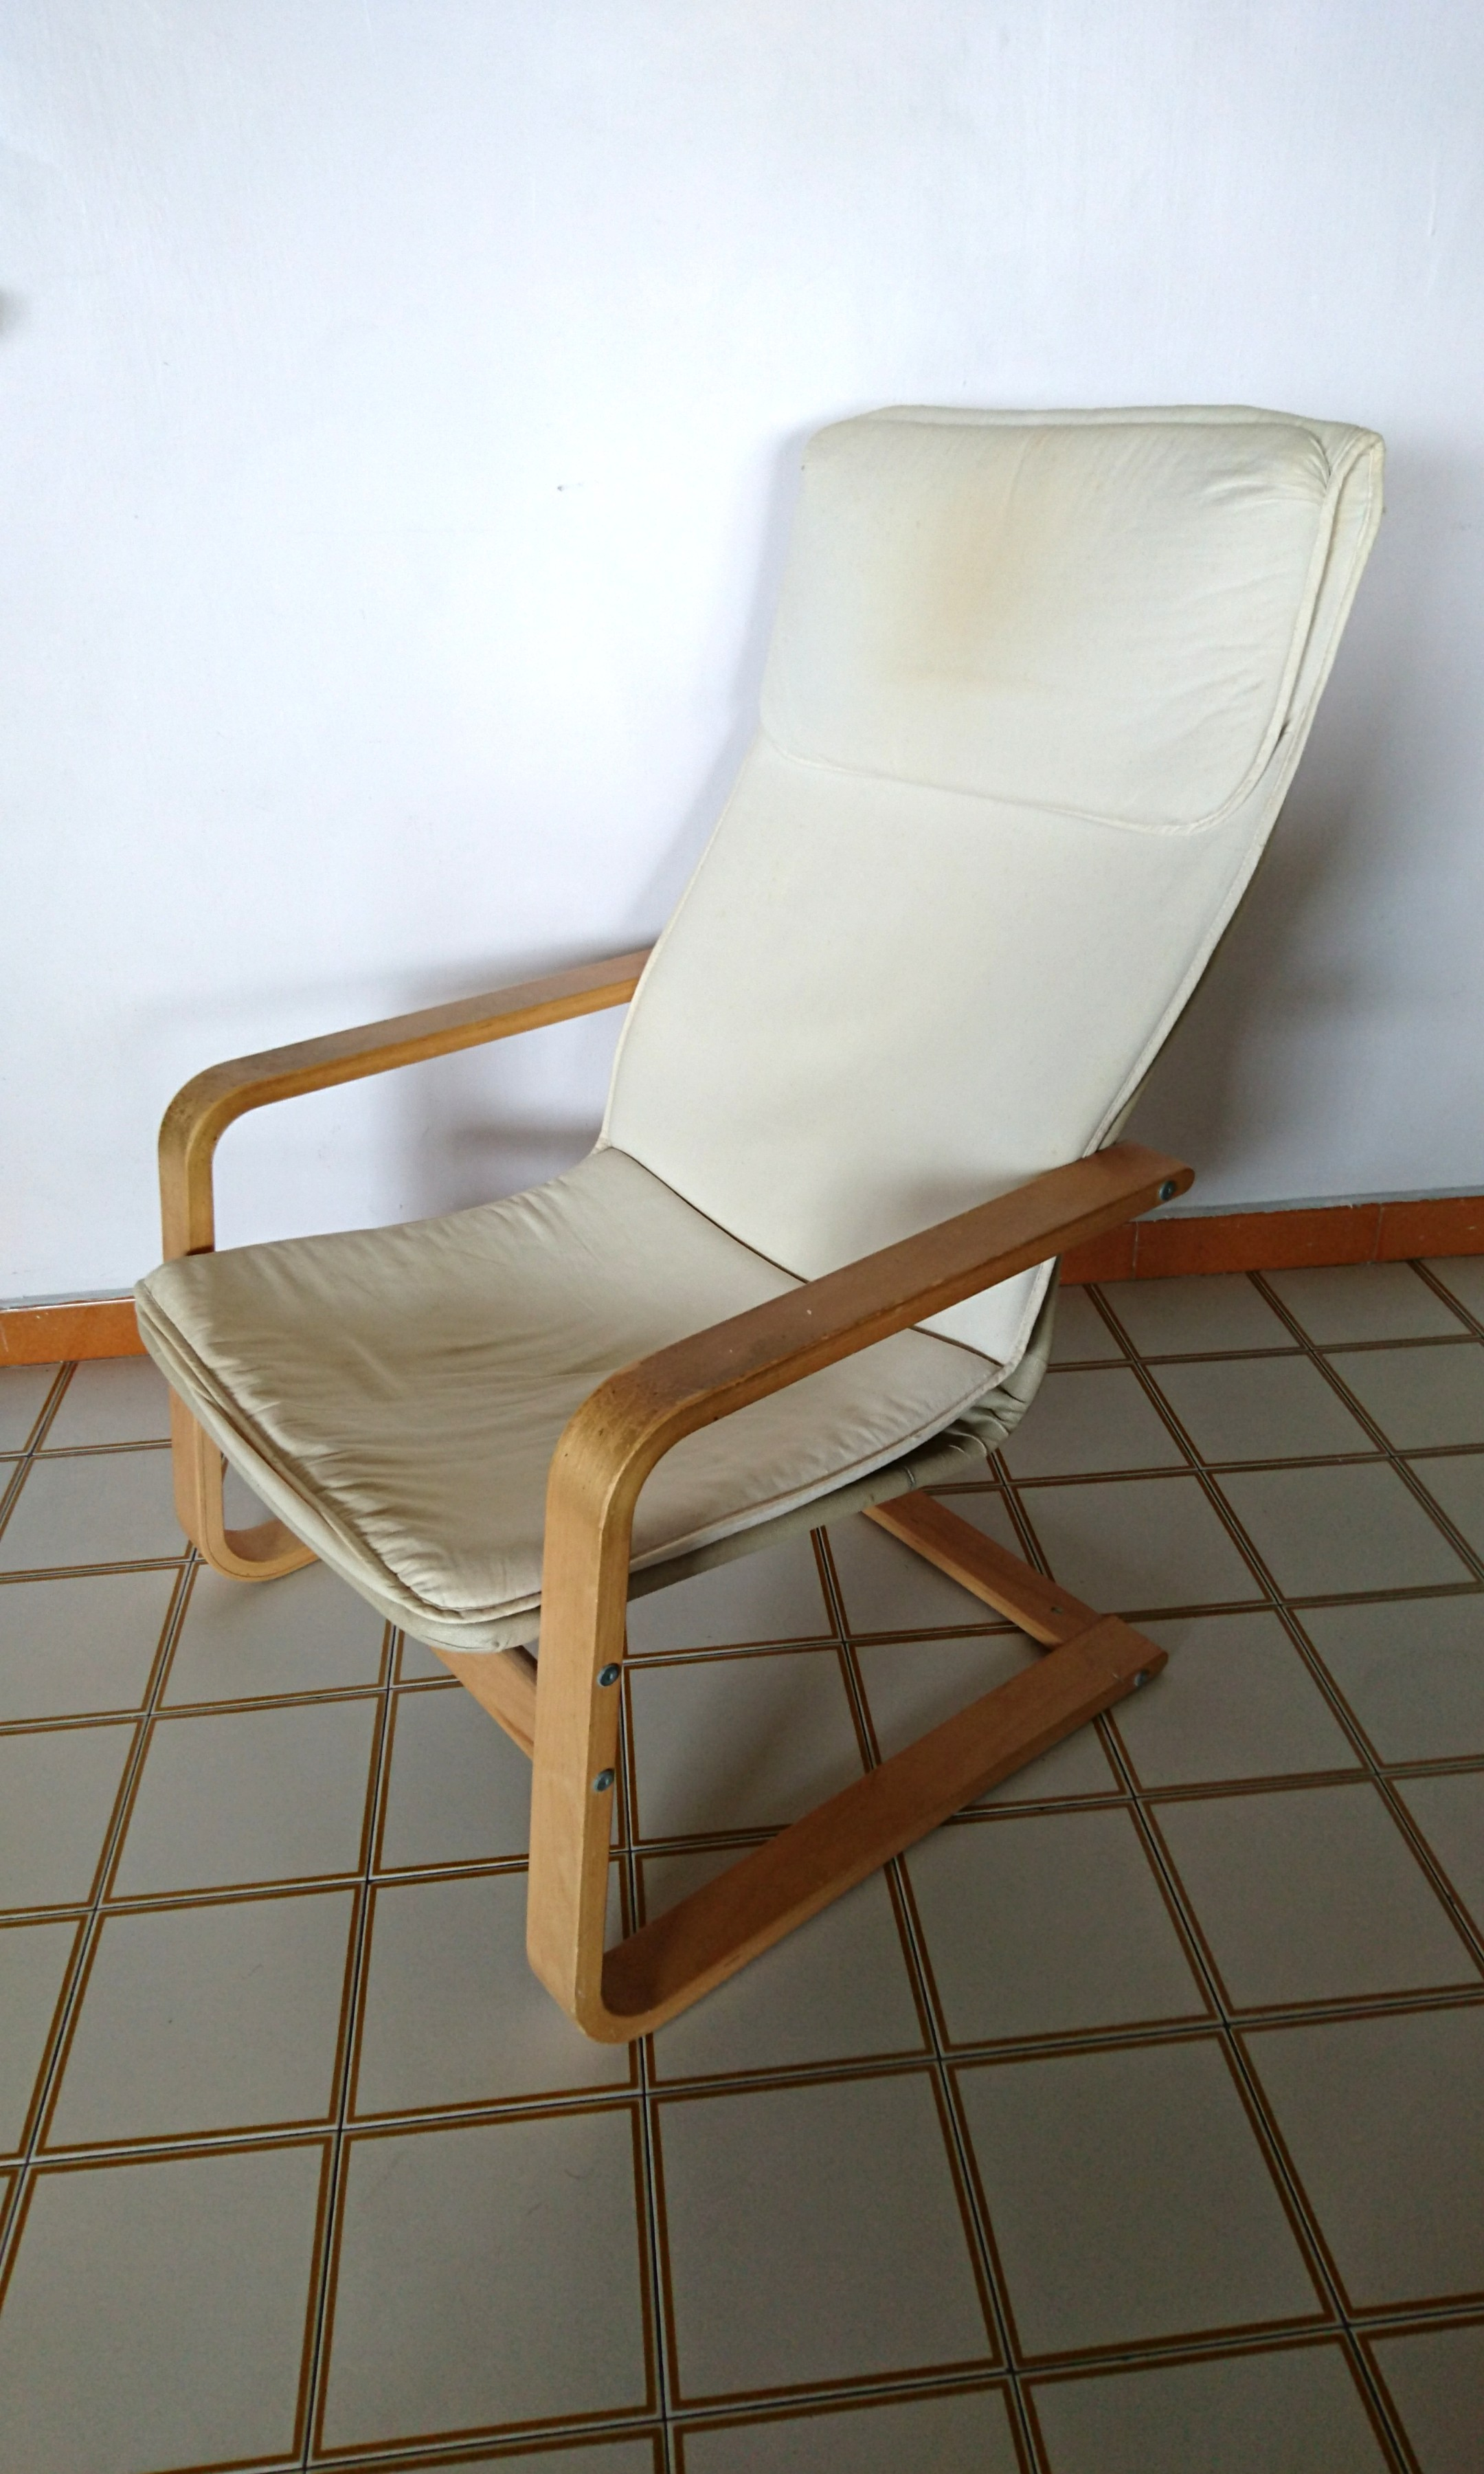 photo photo ... & Ikea Pello Rocking Chair Furniture Tables u0026 Chairs on Carousell